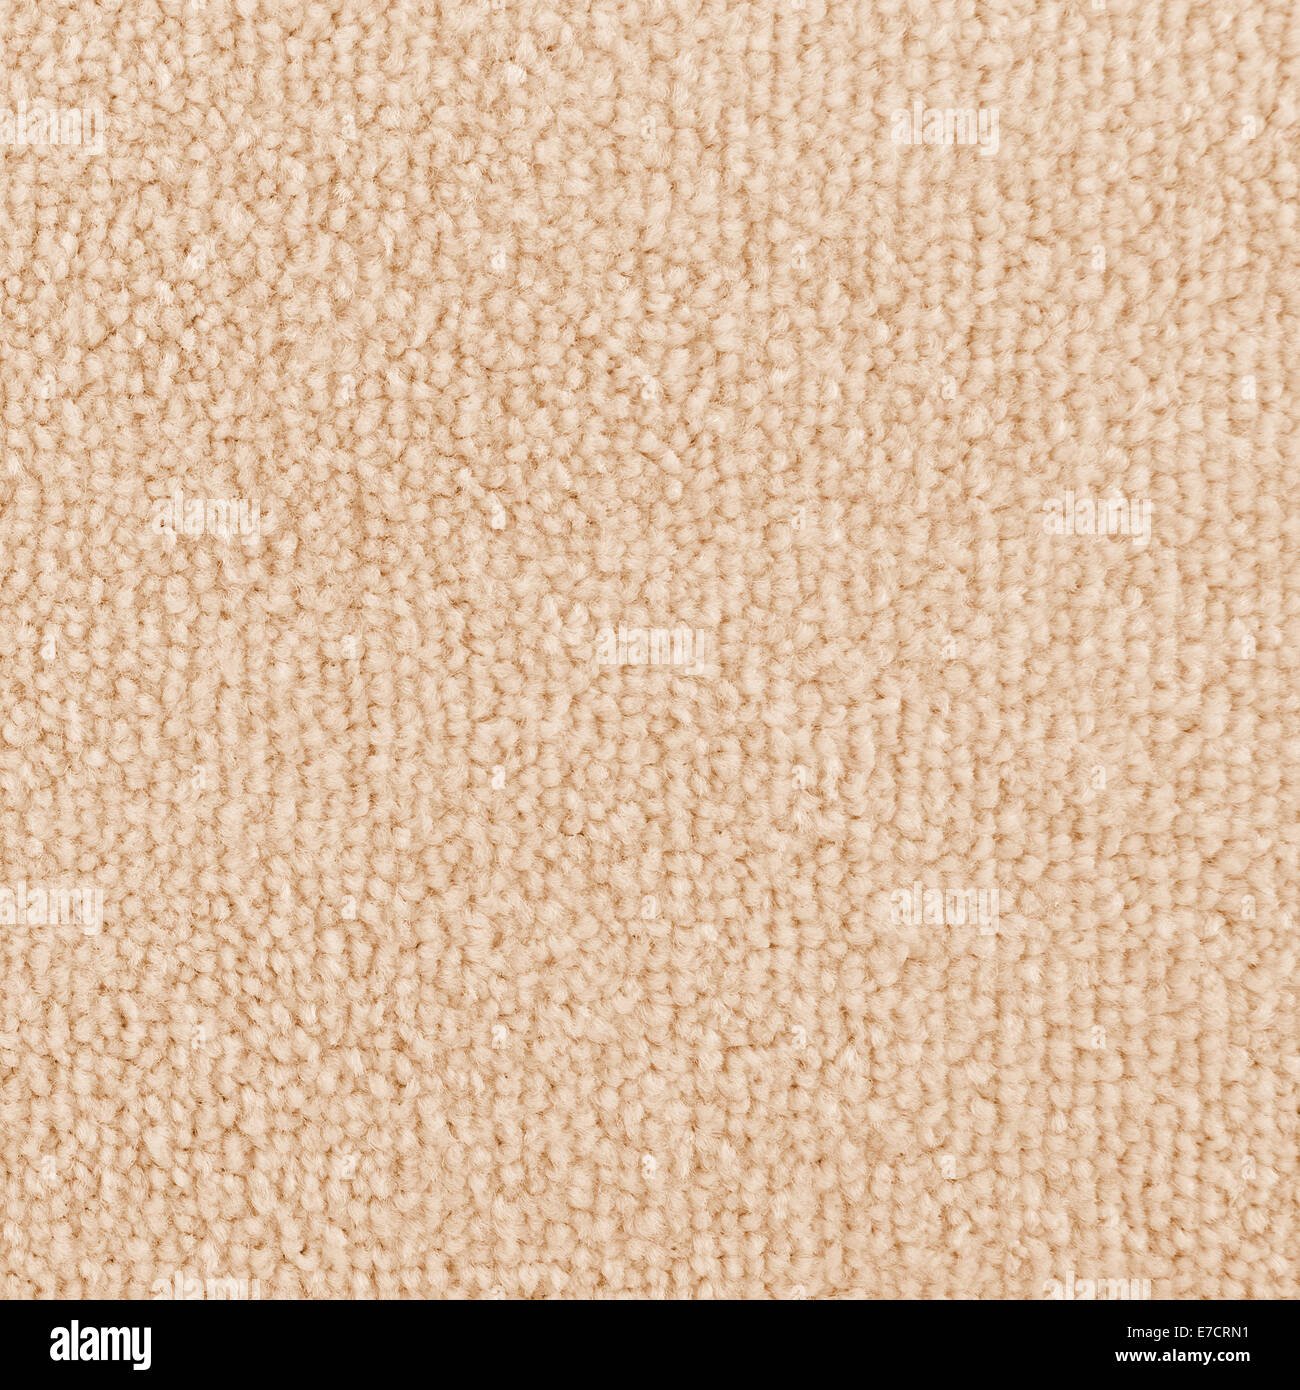 New carpet texture. Bright Beige carpet flooring as seamless background. - Stock Image